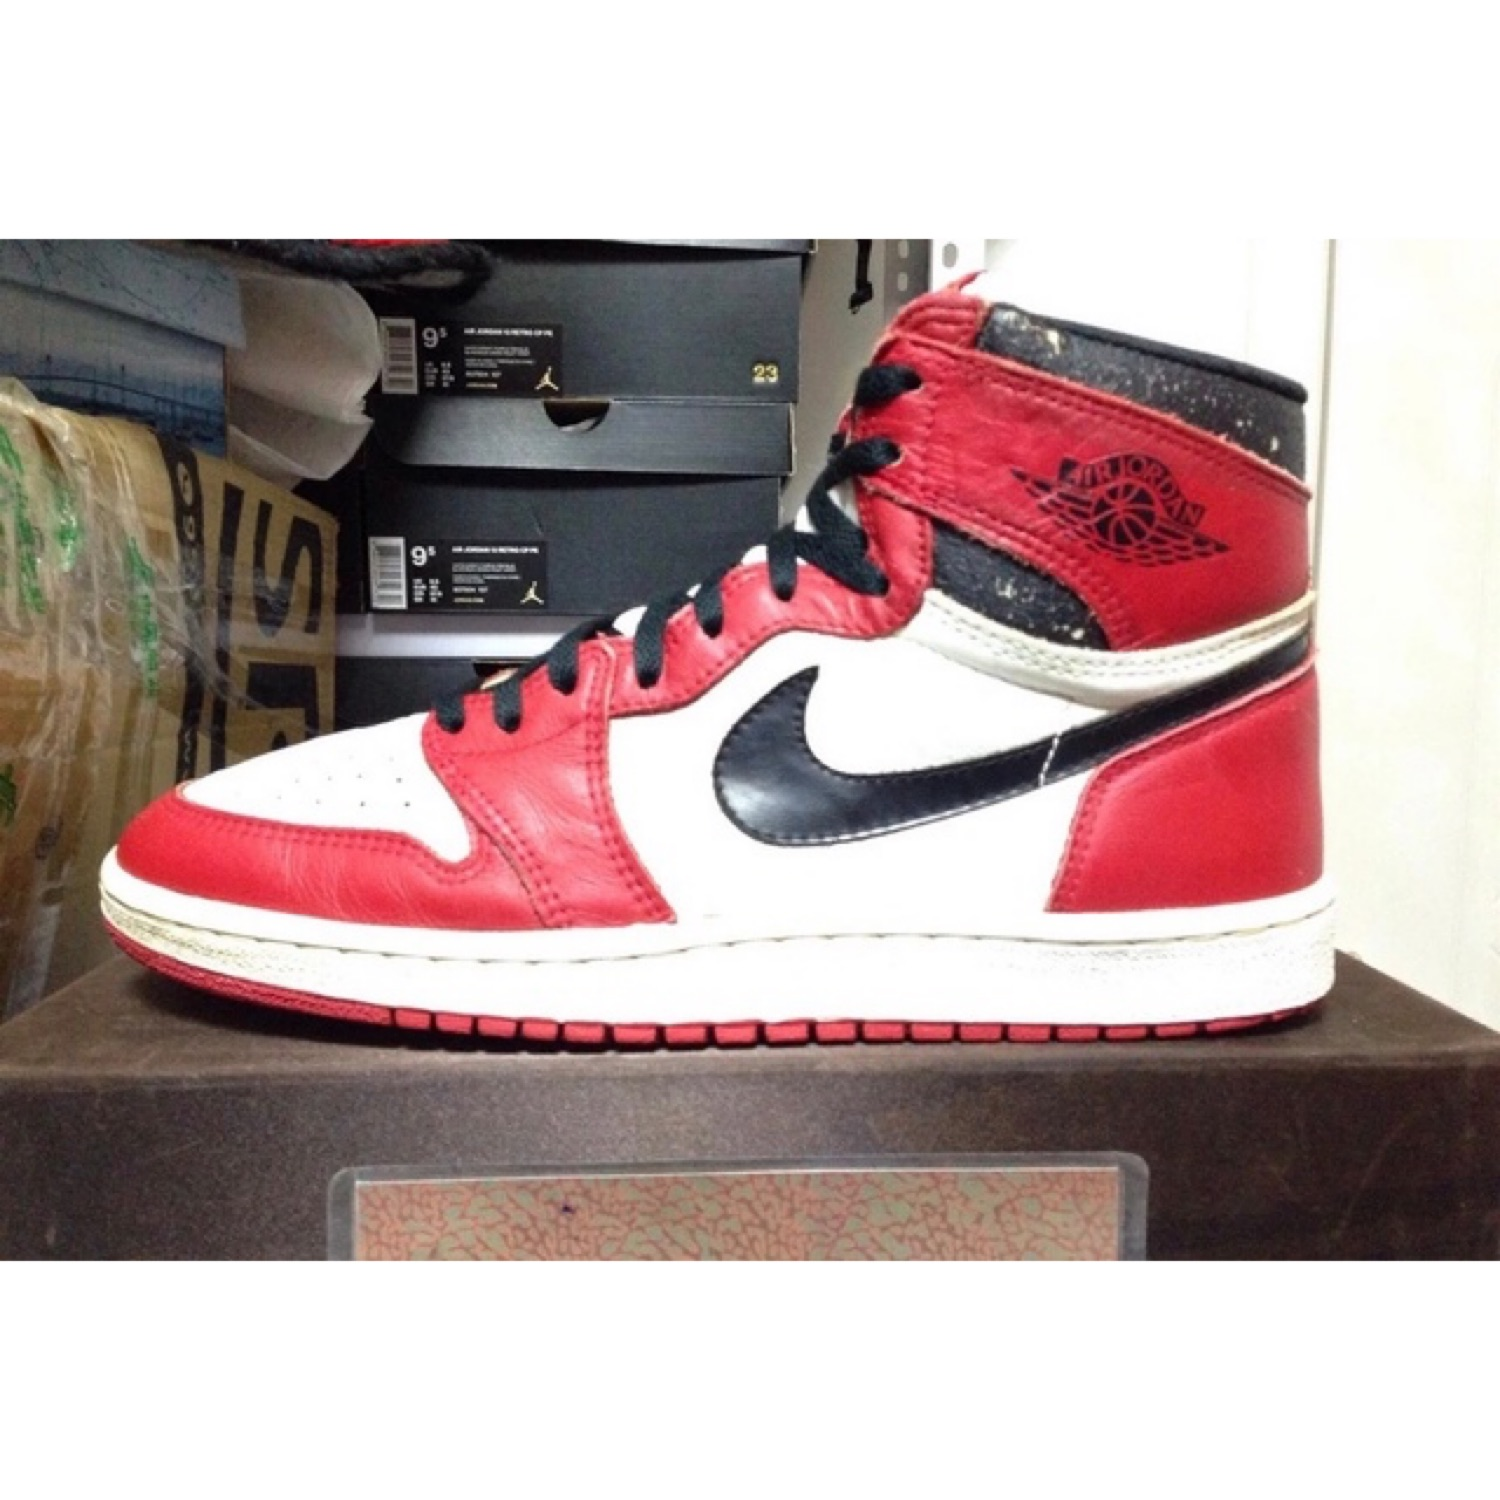 Nike Og Air Jordan 1 High Chicago 1985